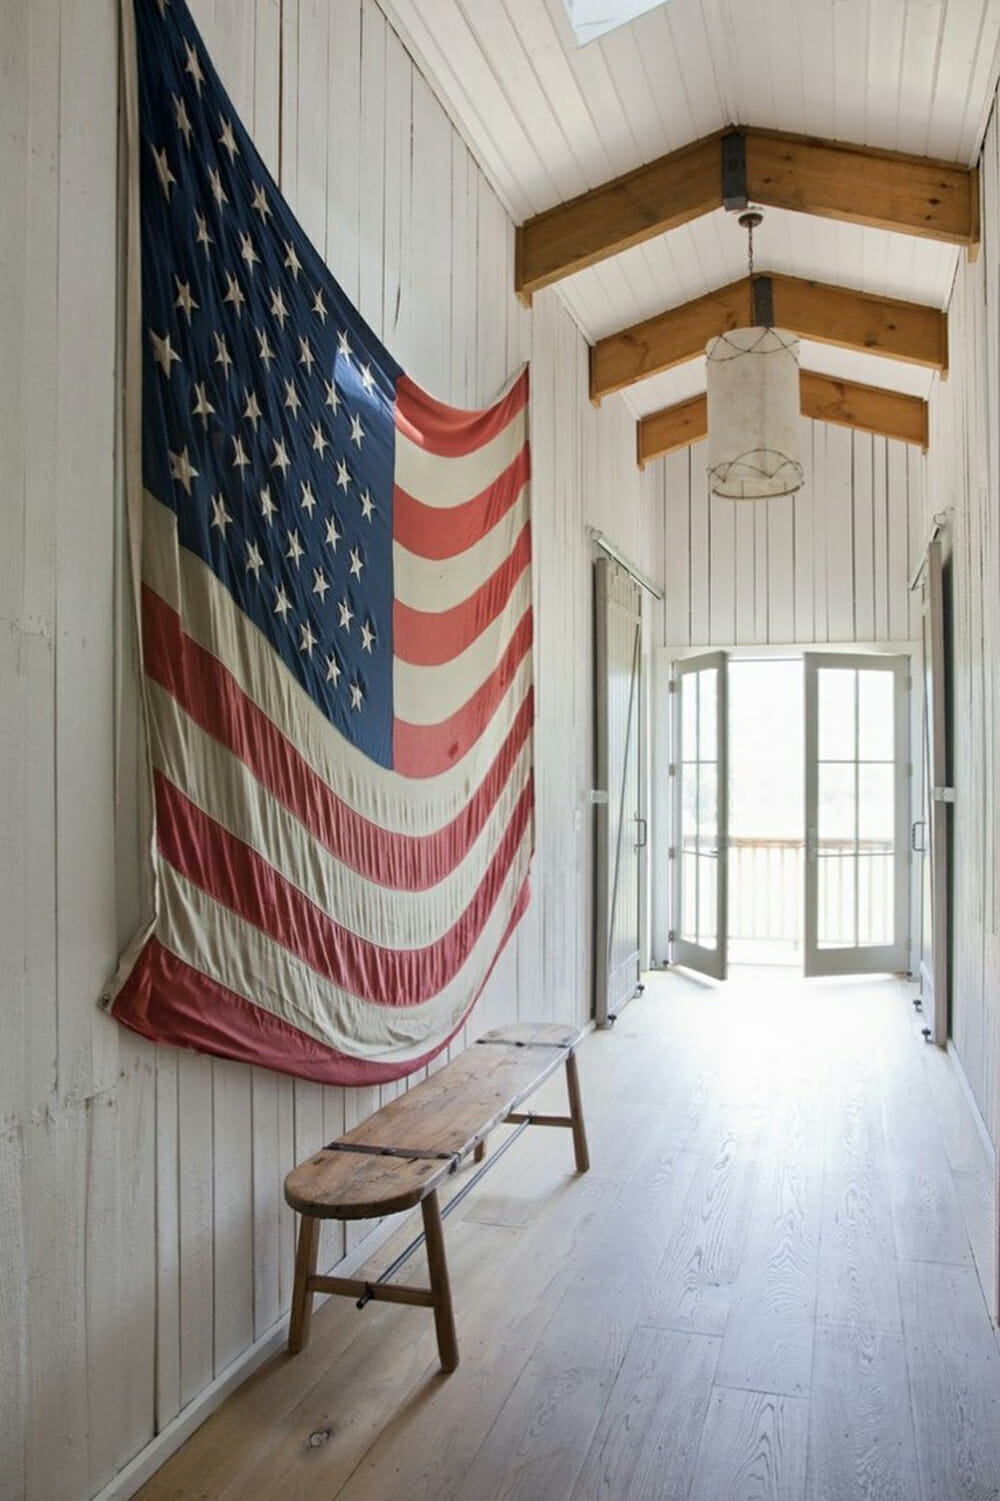 A Big Flag and 5 other ways to decorate an empty wall